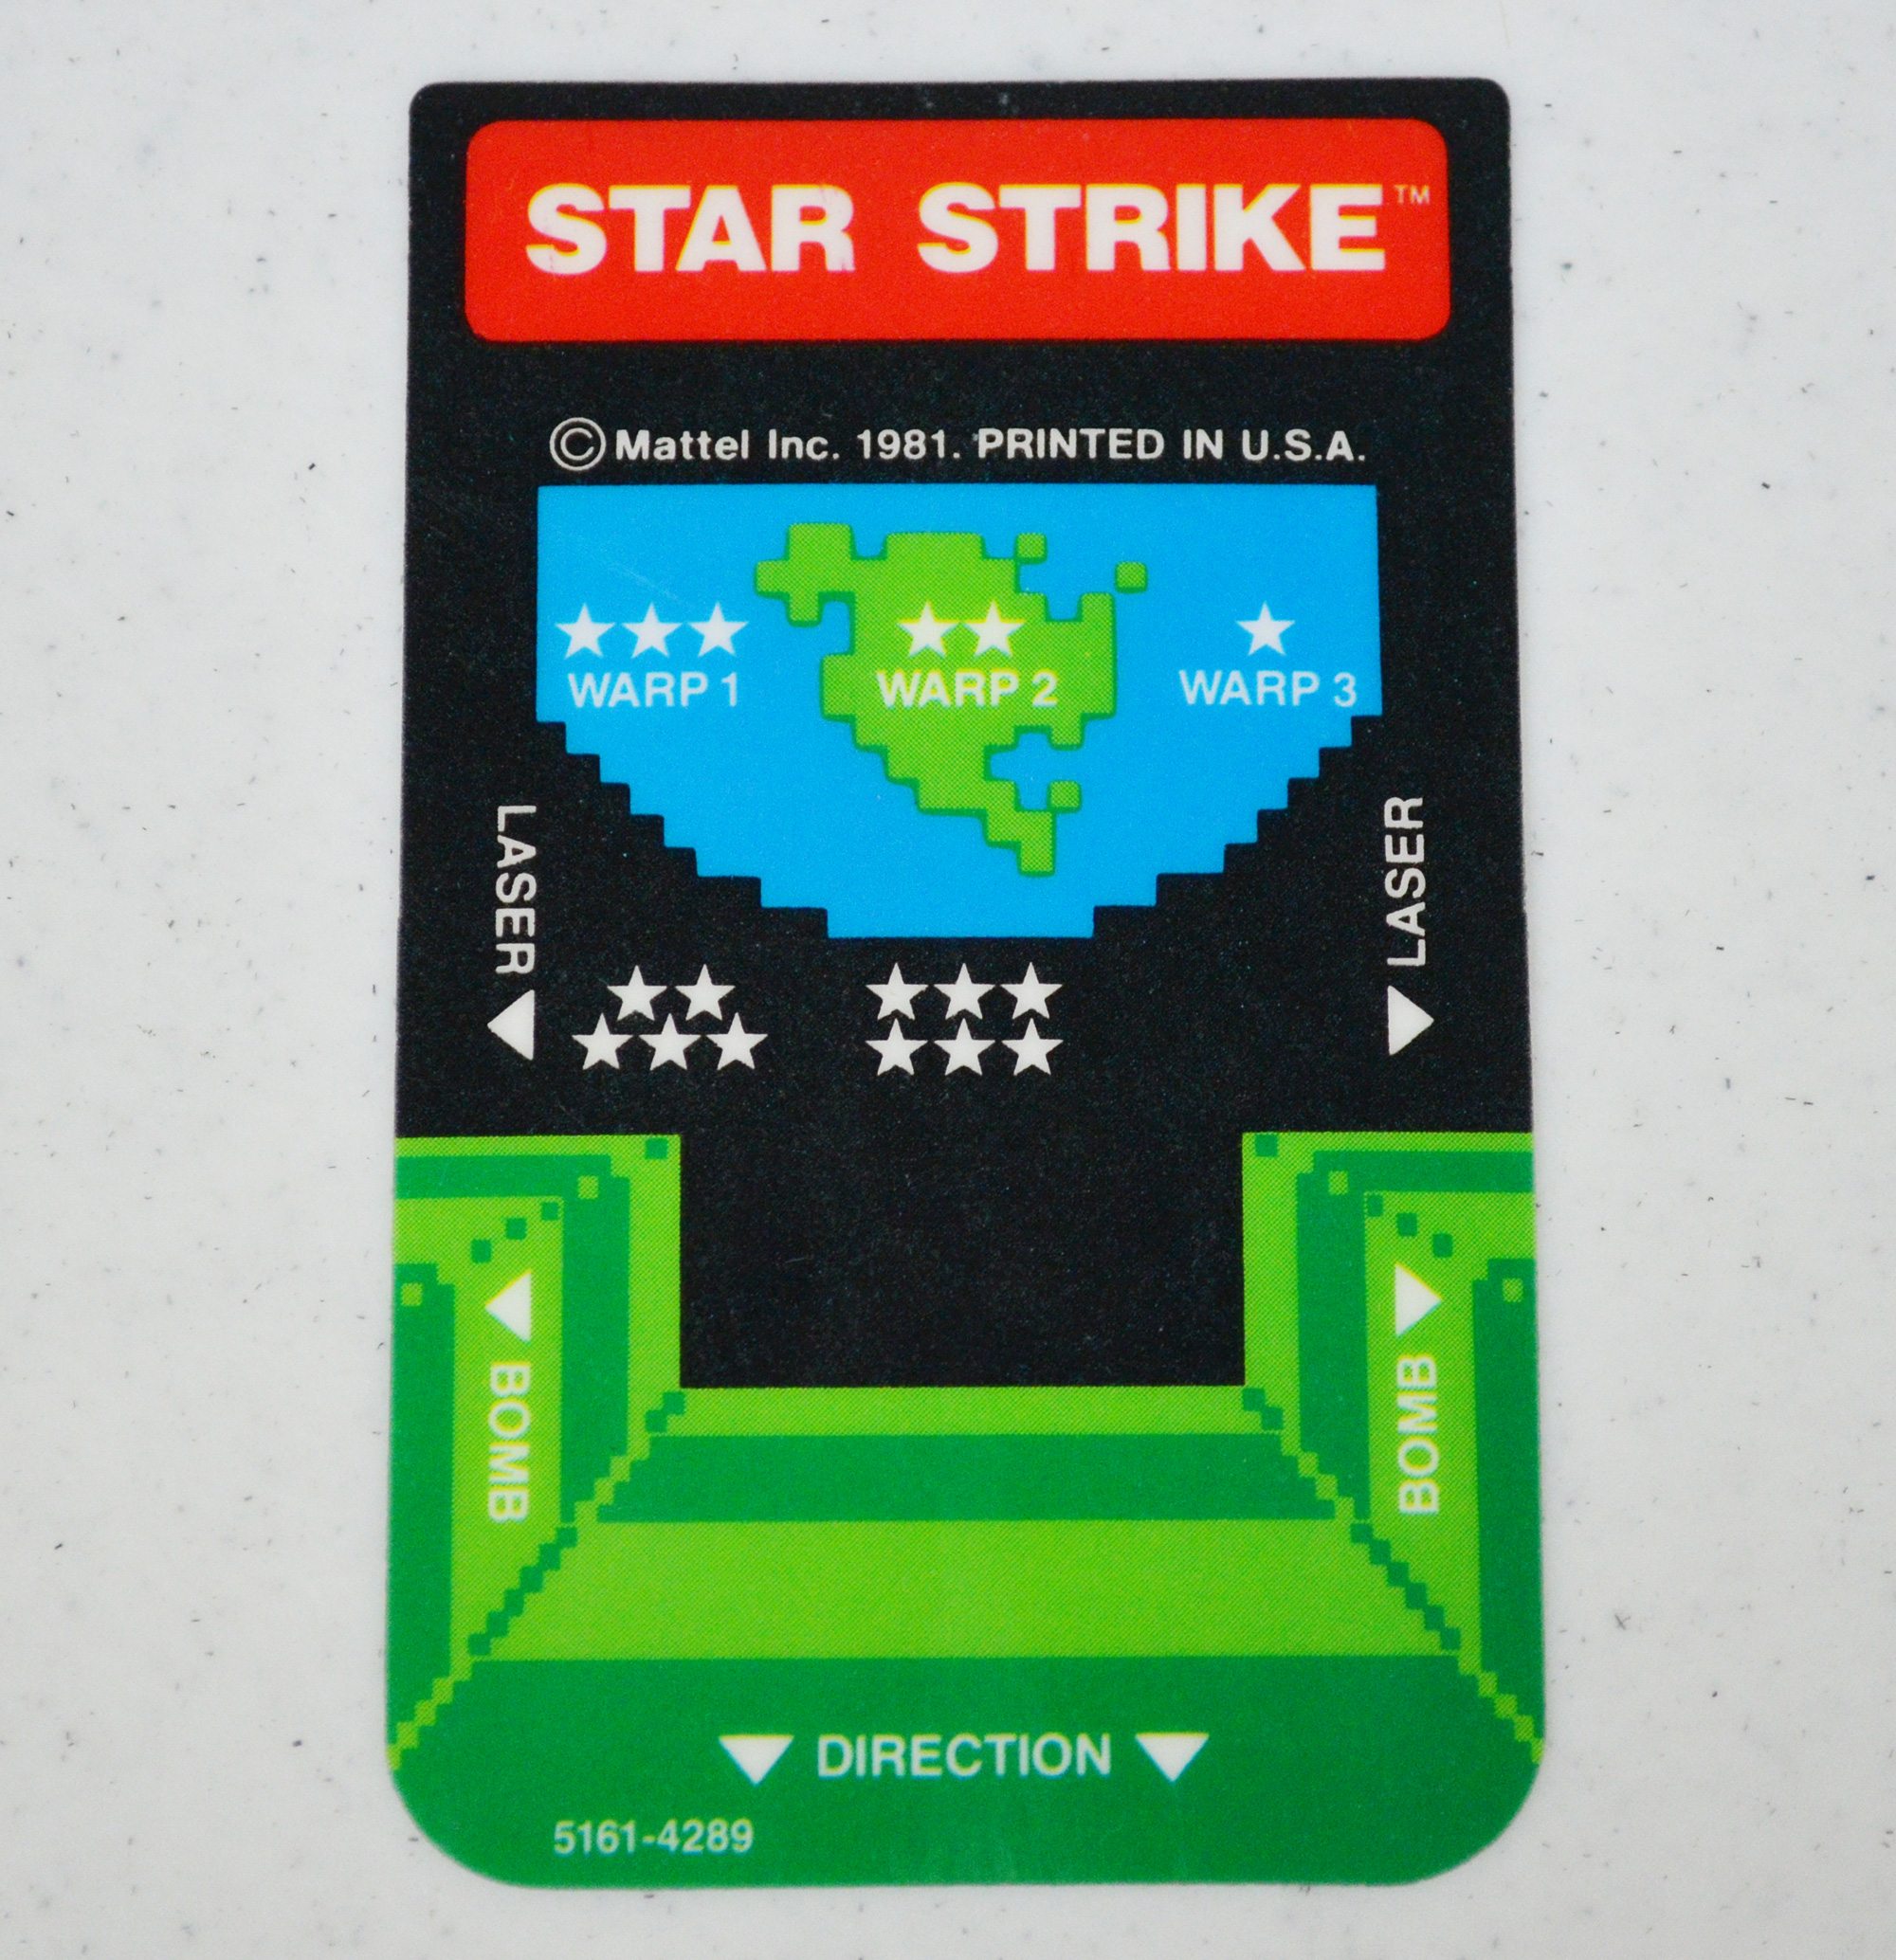 Rickster8: Star Strike: Level 5 [Button 4] (Intellivision Emulated) 7,562 points on 2020-09-07 14:36:55